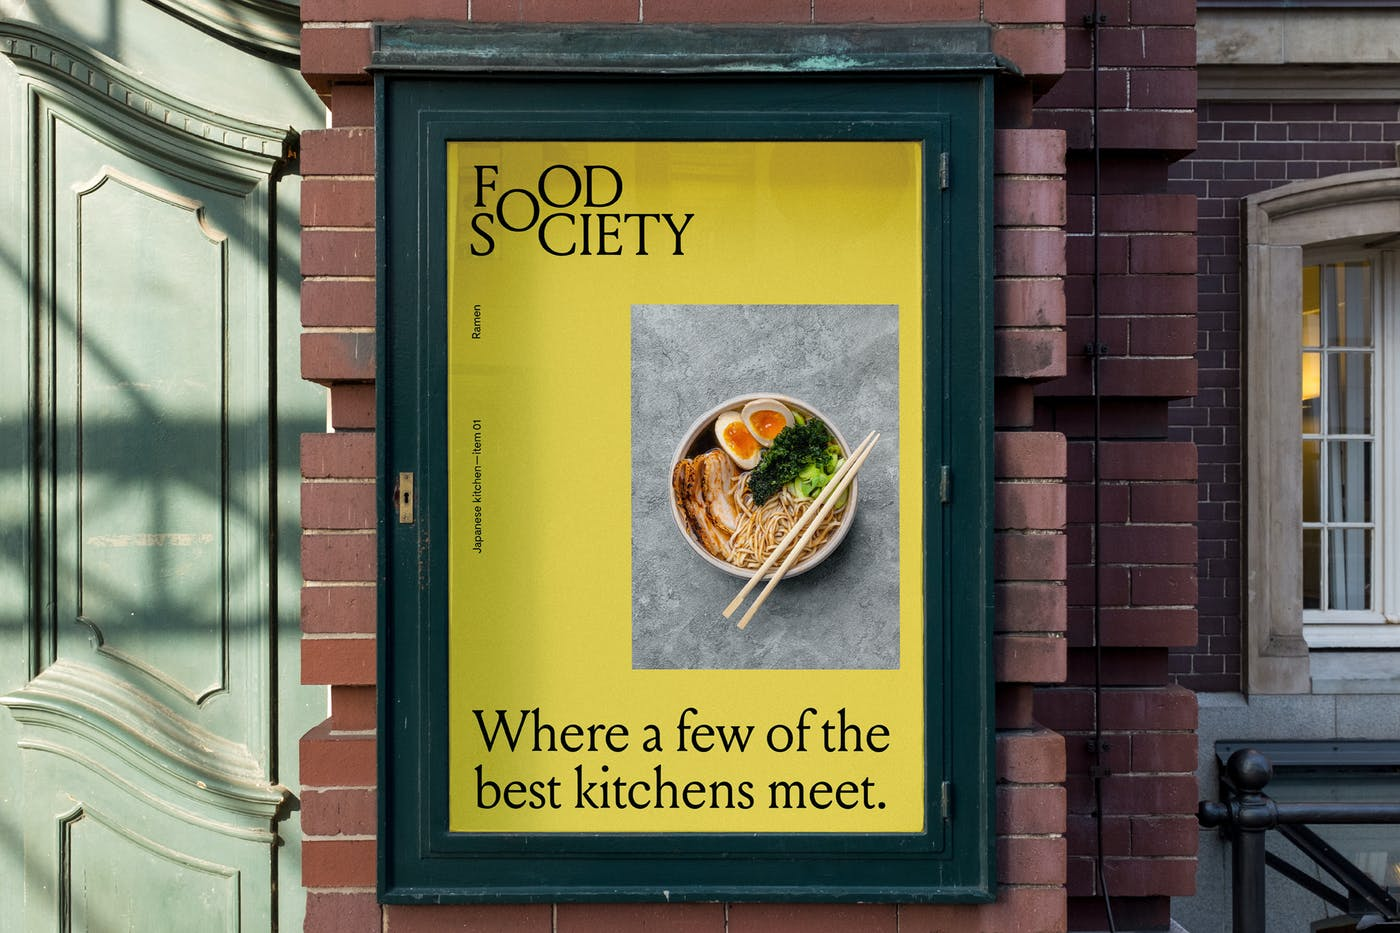 Food Society Street Poster 01